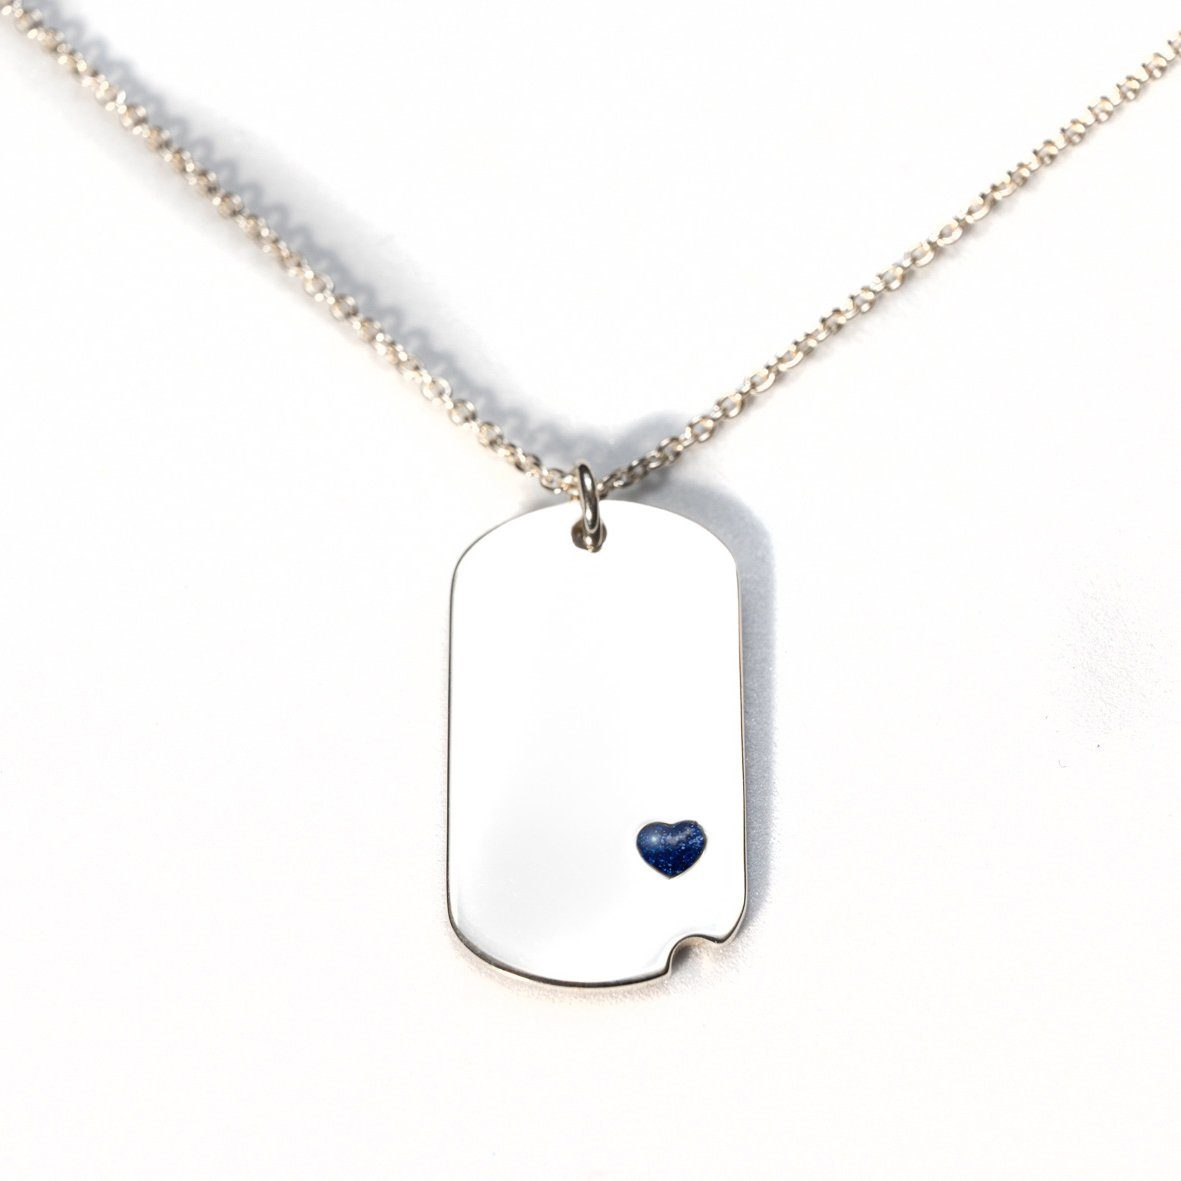 Sterling-Silver Dog Tag with Everence Inlay - Small Everence Navy